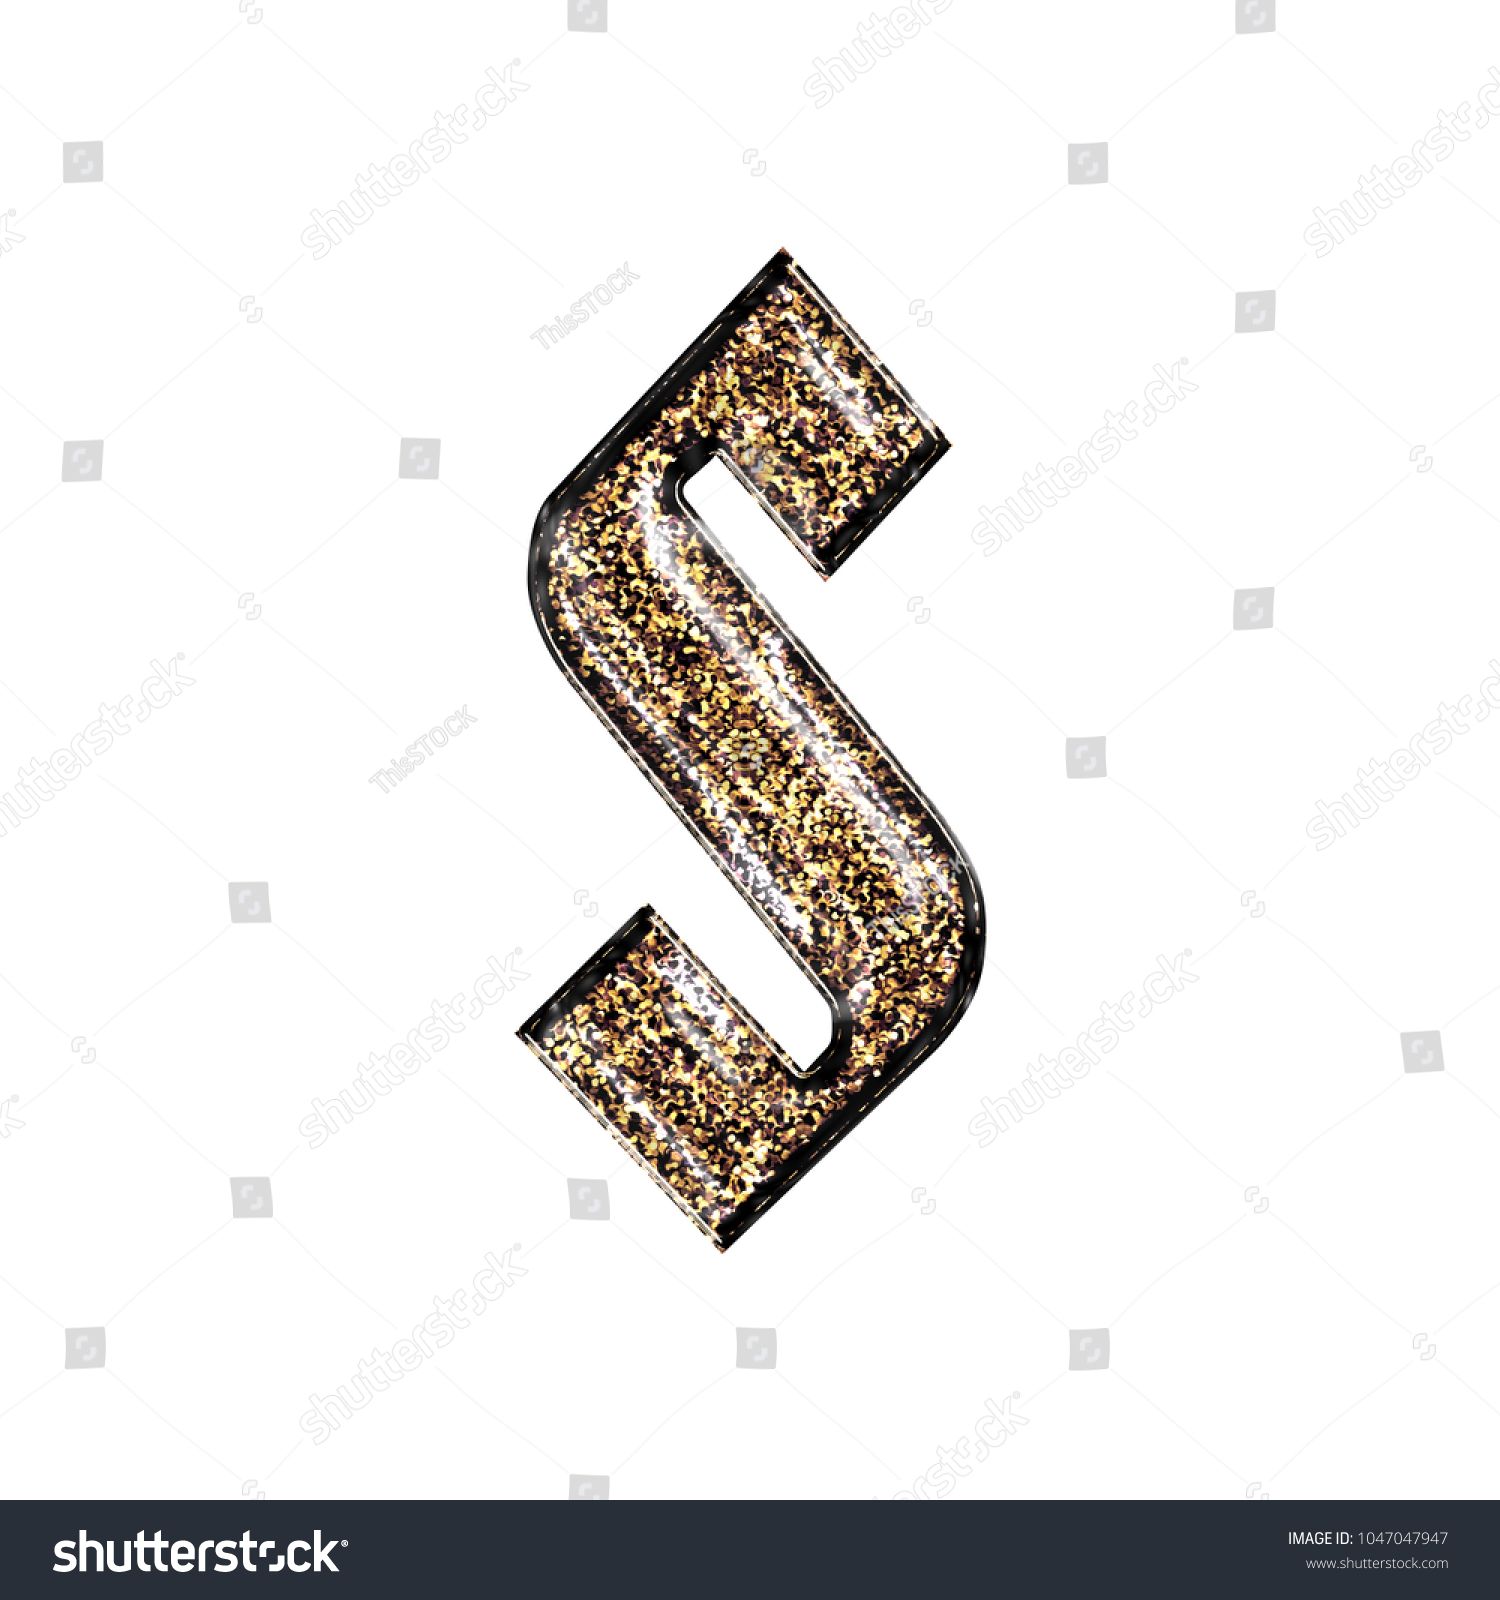 Royalty Free Stock Illustration Of Fancy Sparkling Glittery Gold